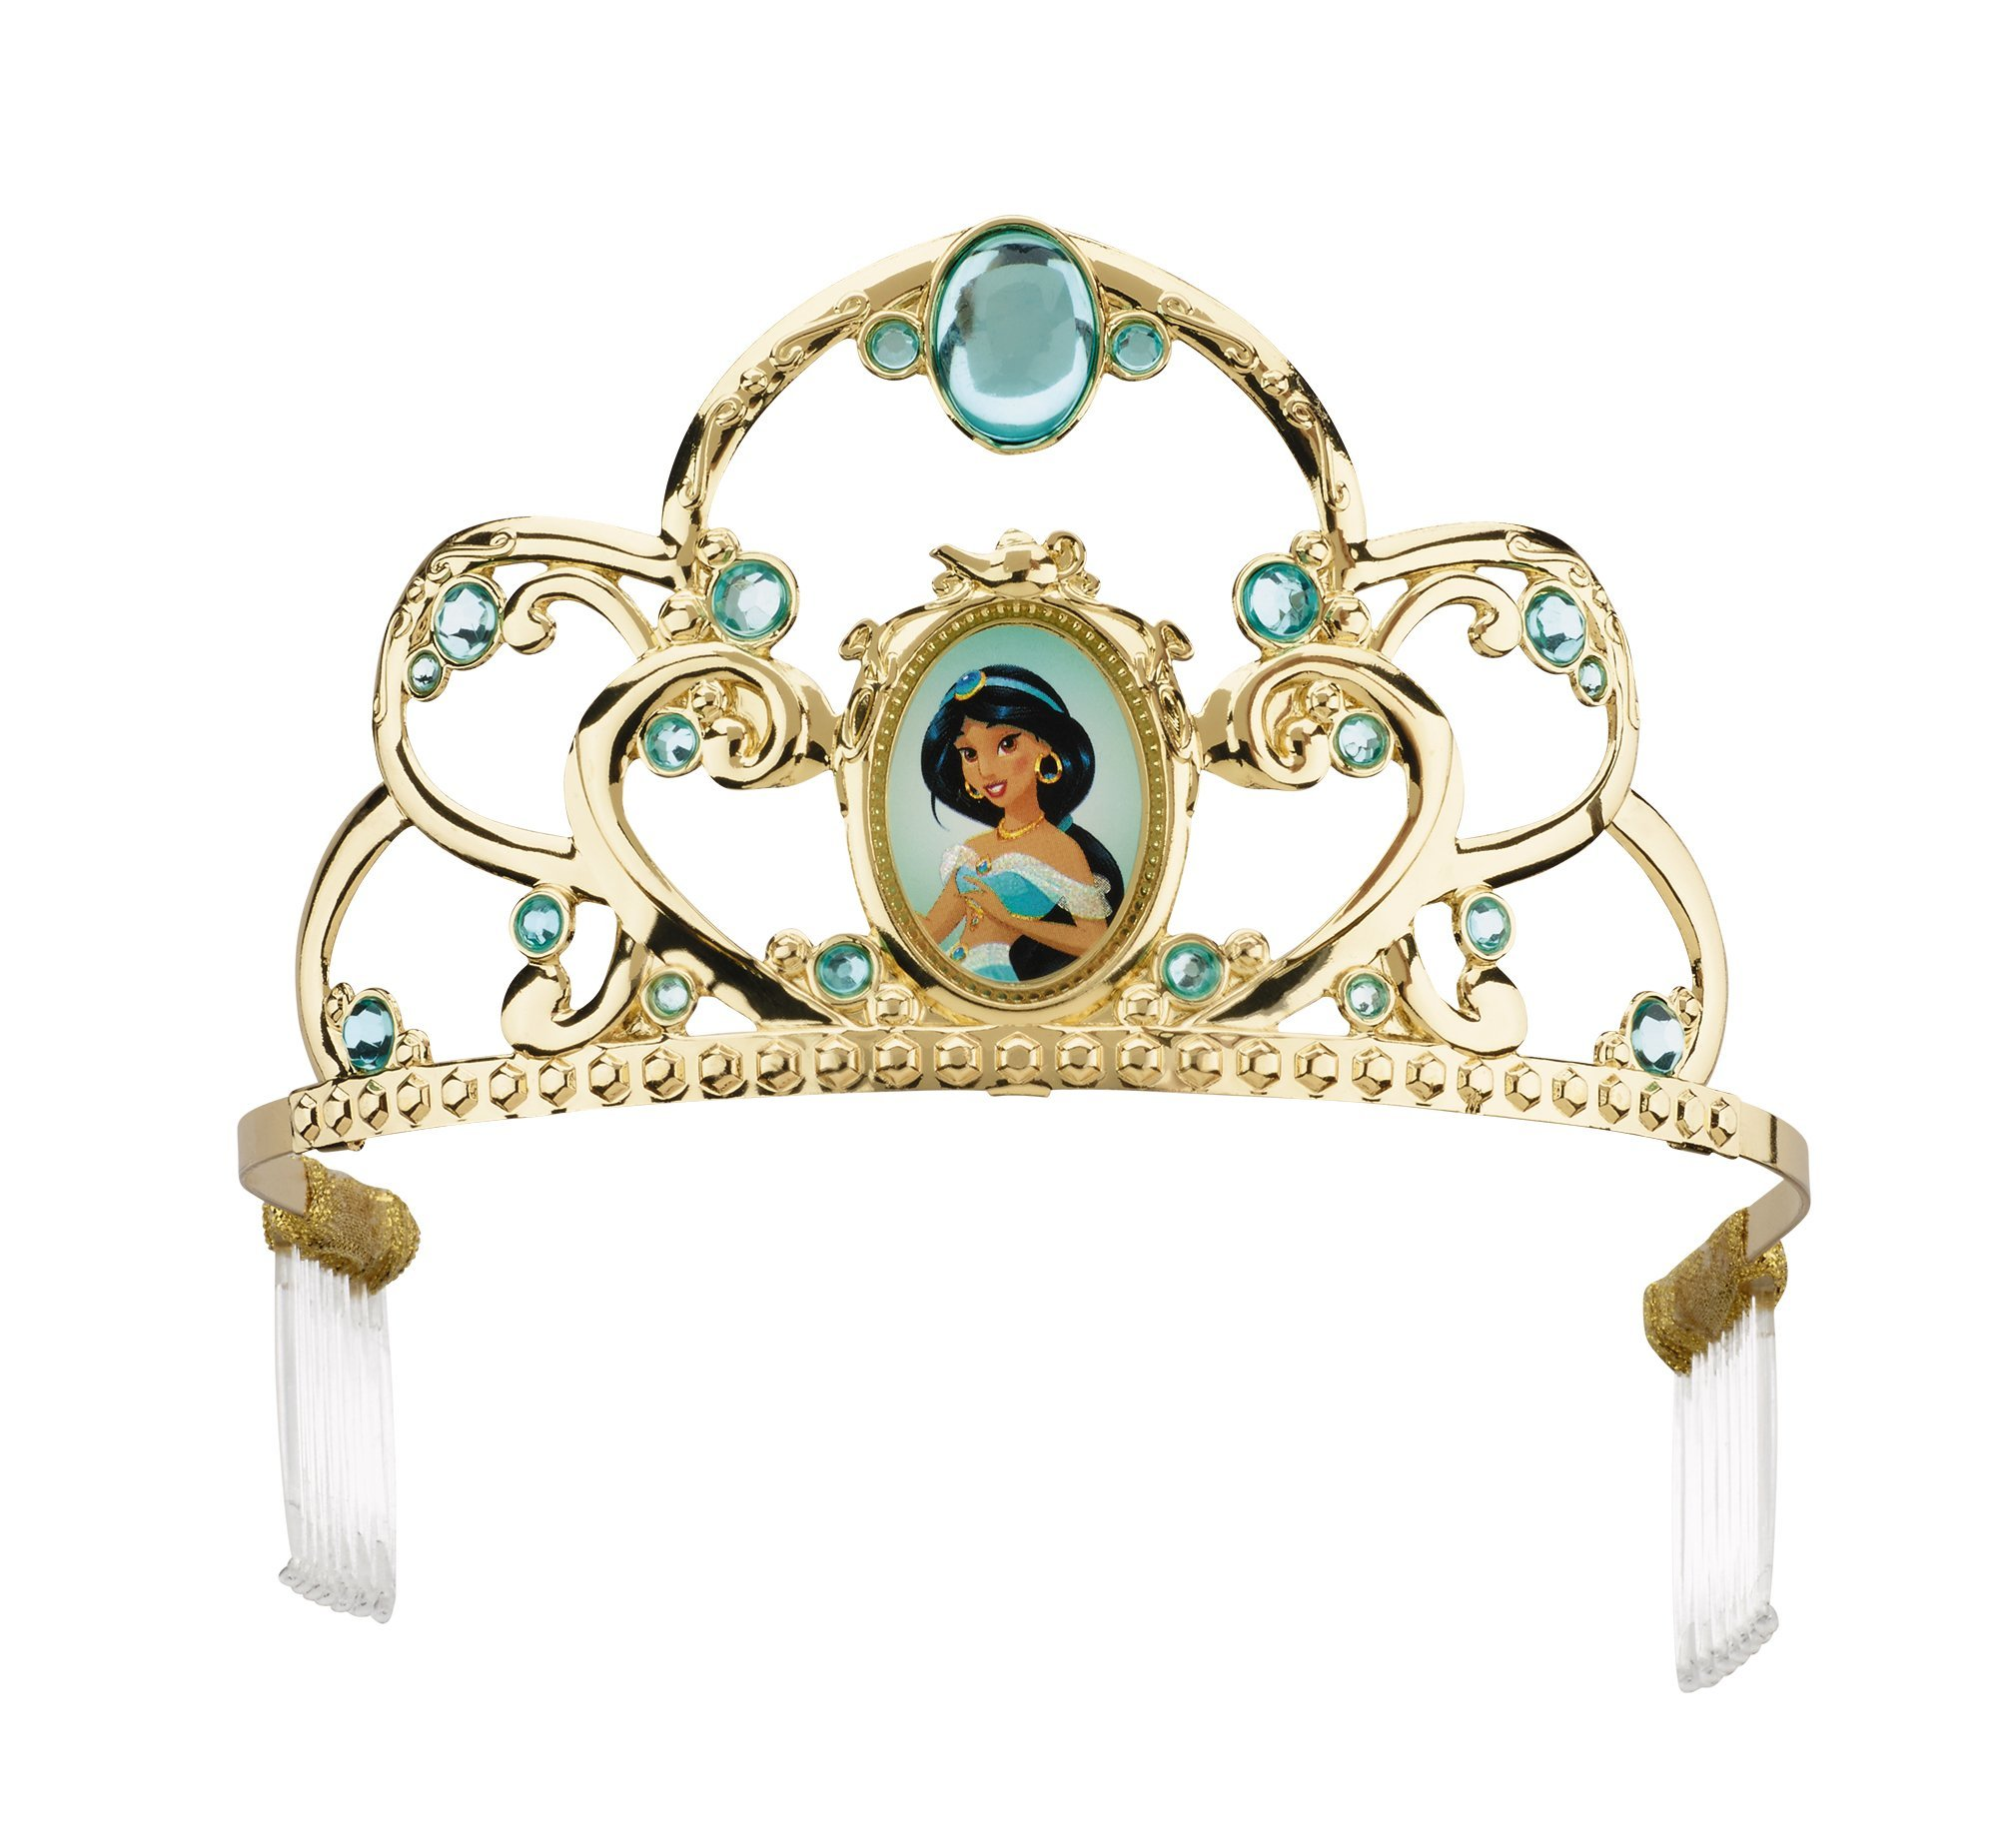 Jasmine Deluxe Disney Princess Aladdin Tiara, One Size Child by Disguise